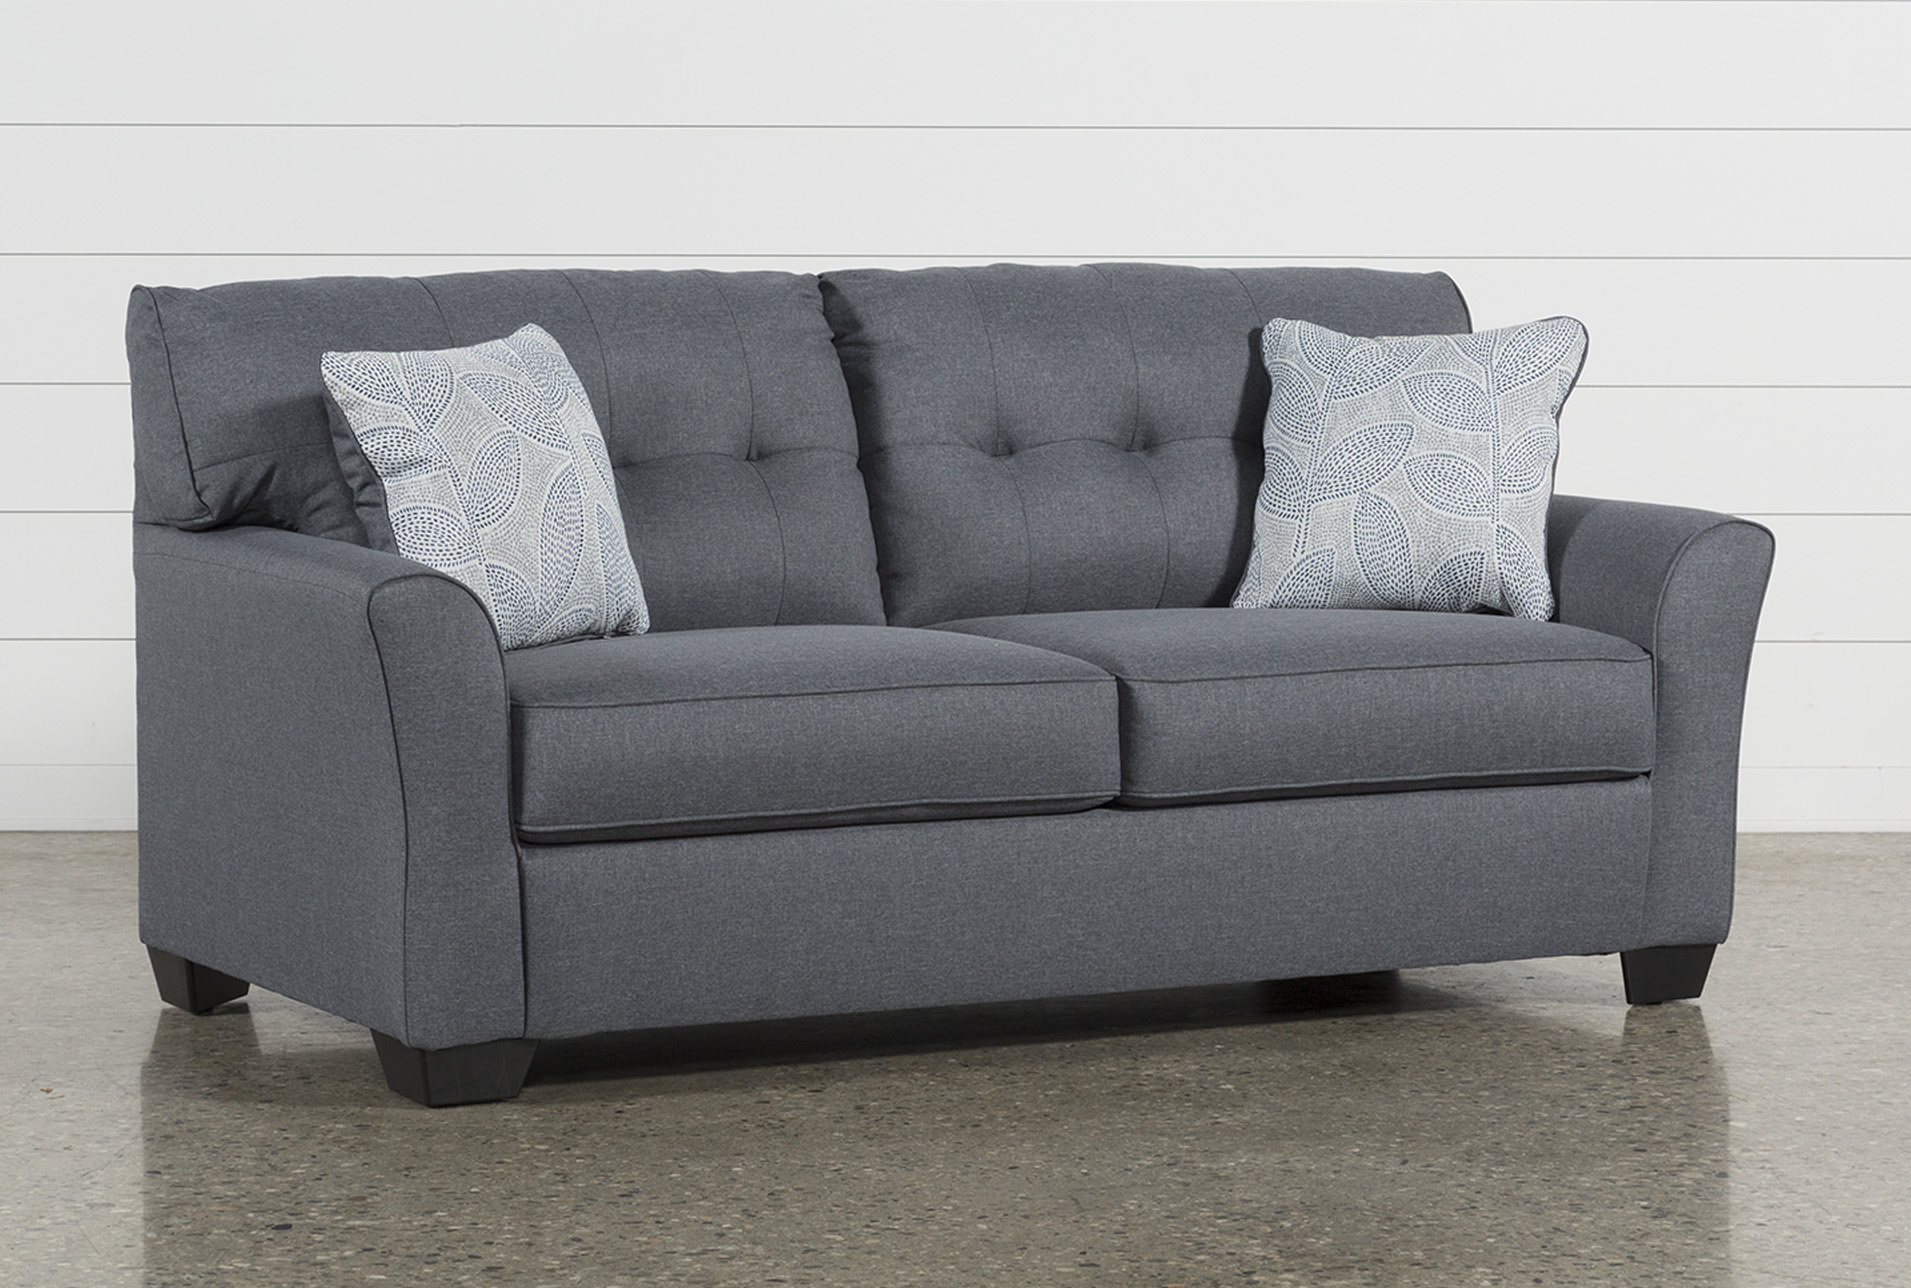 sofa beds sleeper sofas free assembly with delivery living spaces rh livingspaces com cheap sleeper sofa sectional buy sofa sleeper